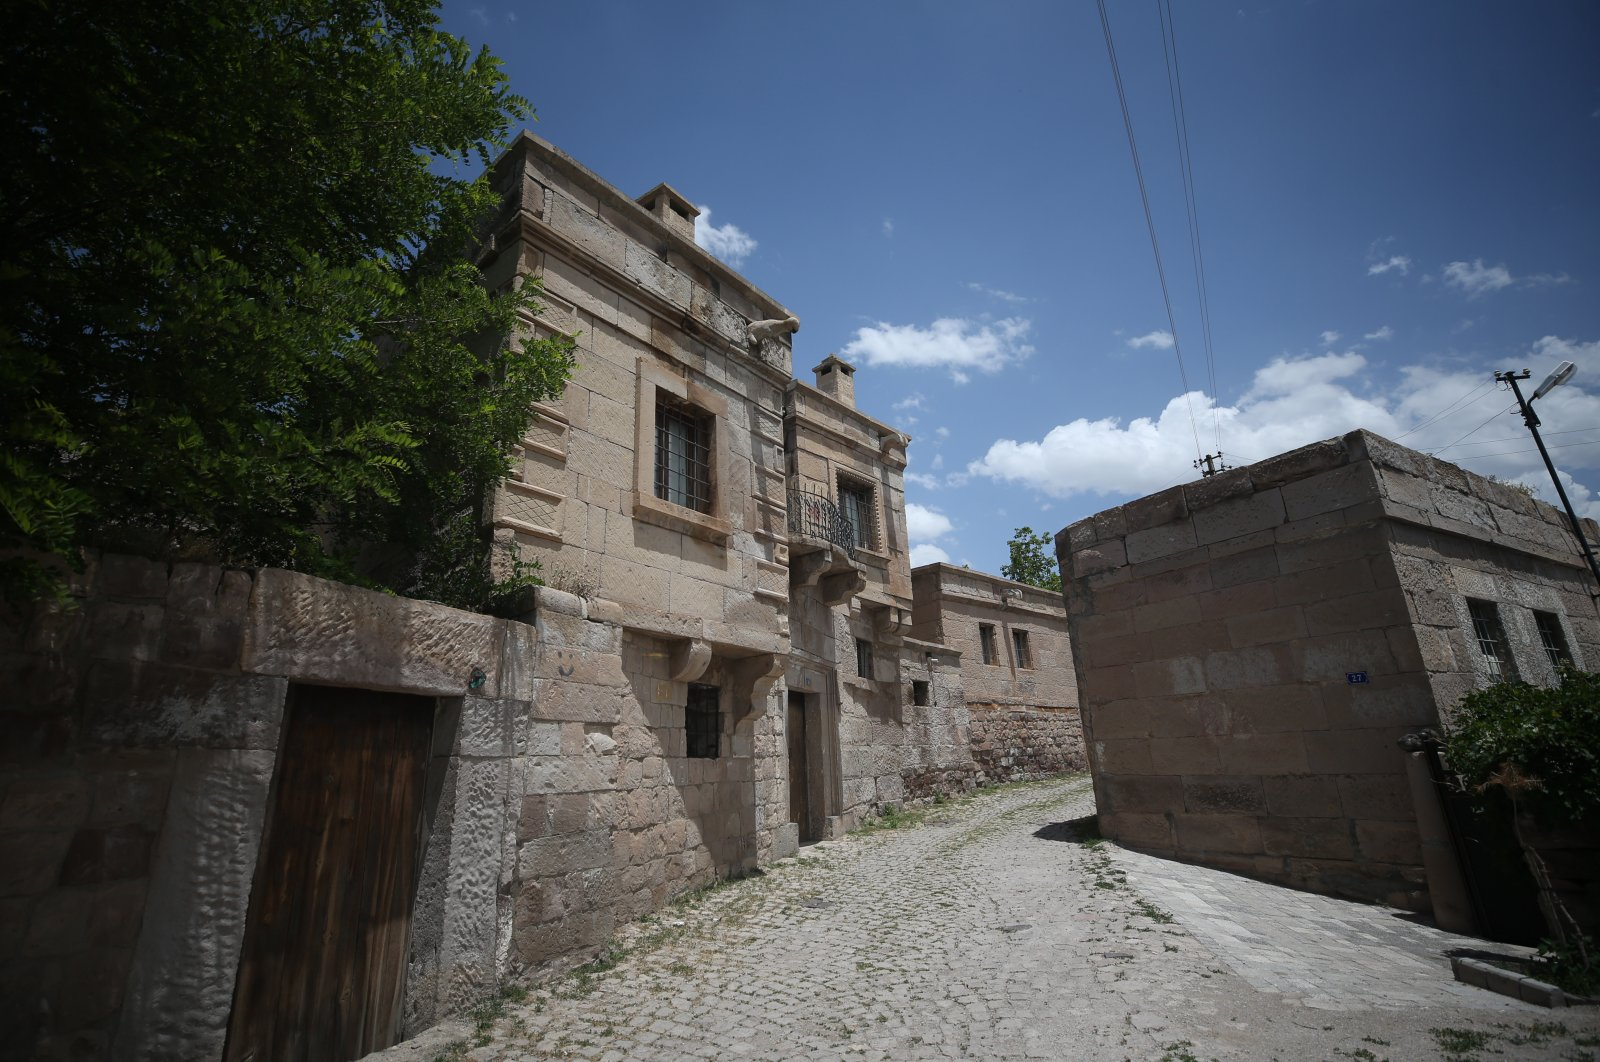 The stone houses of the neighborhood have been a beaten track for tourists recently. (AA PHOTO)